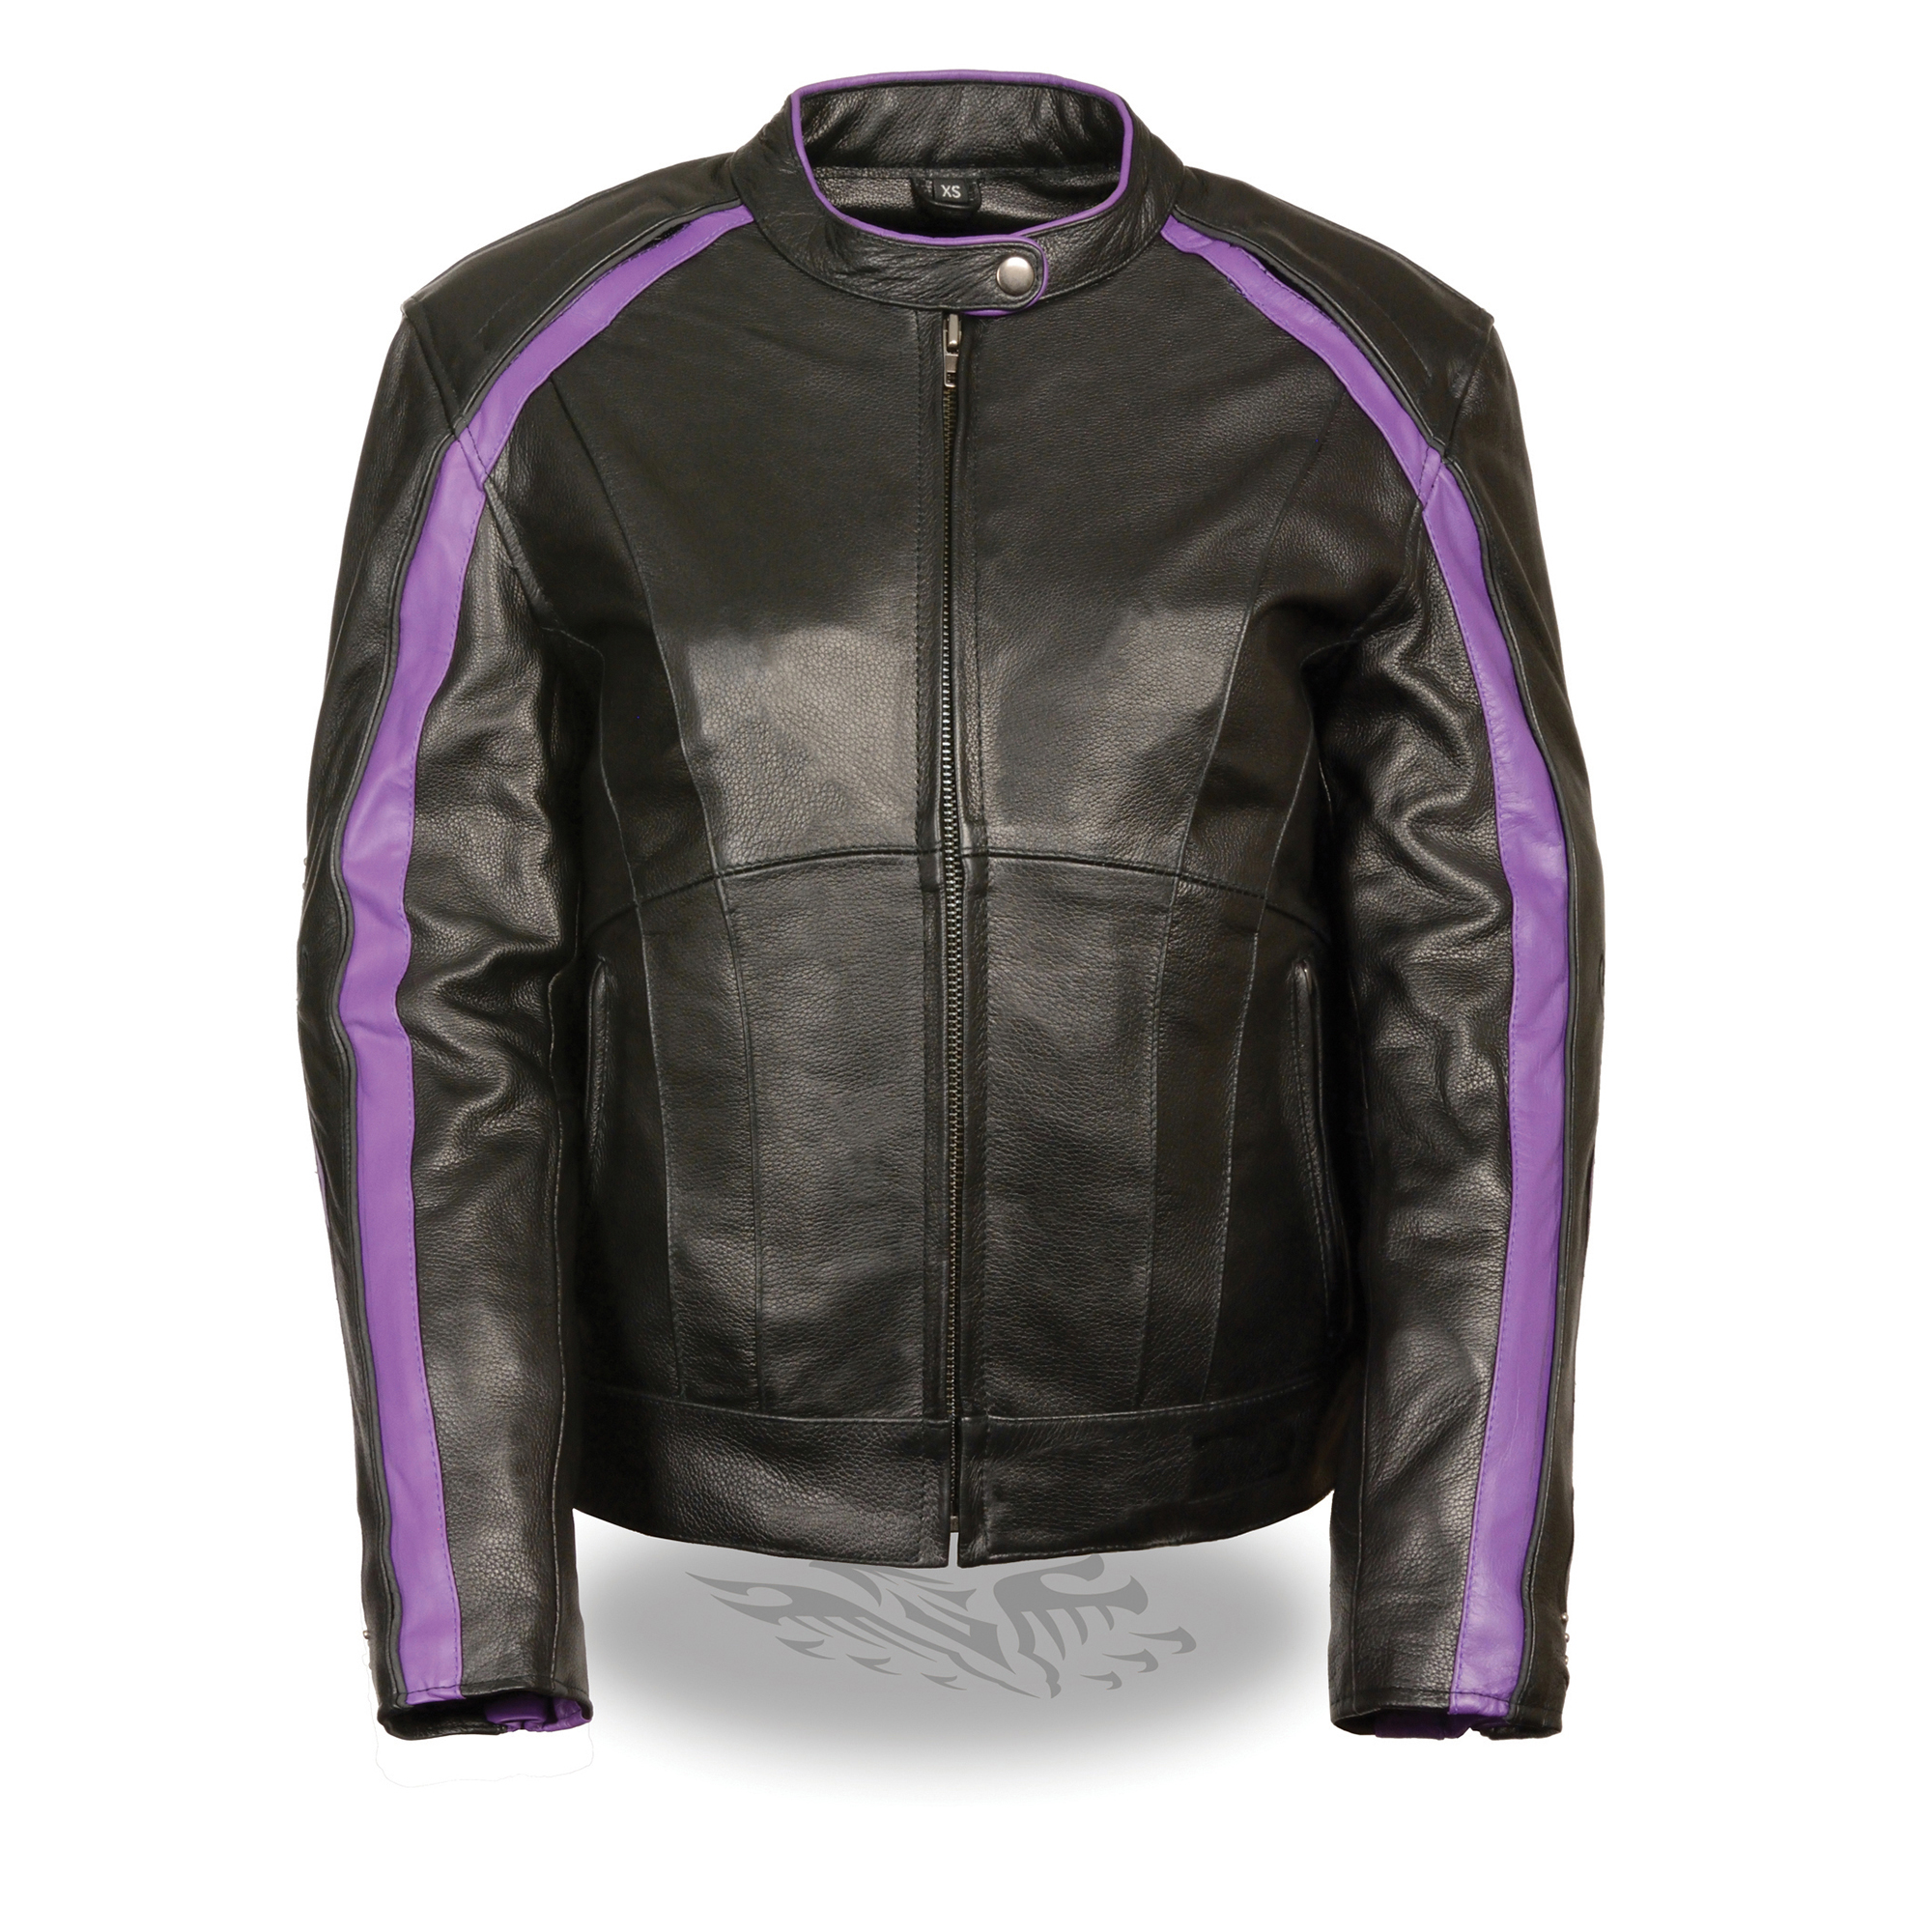 Dynamic Leather - Site - photo #8